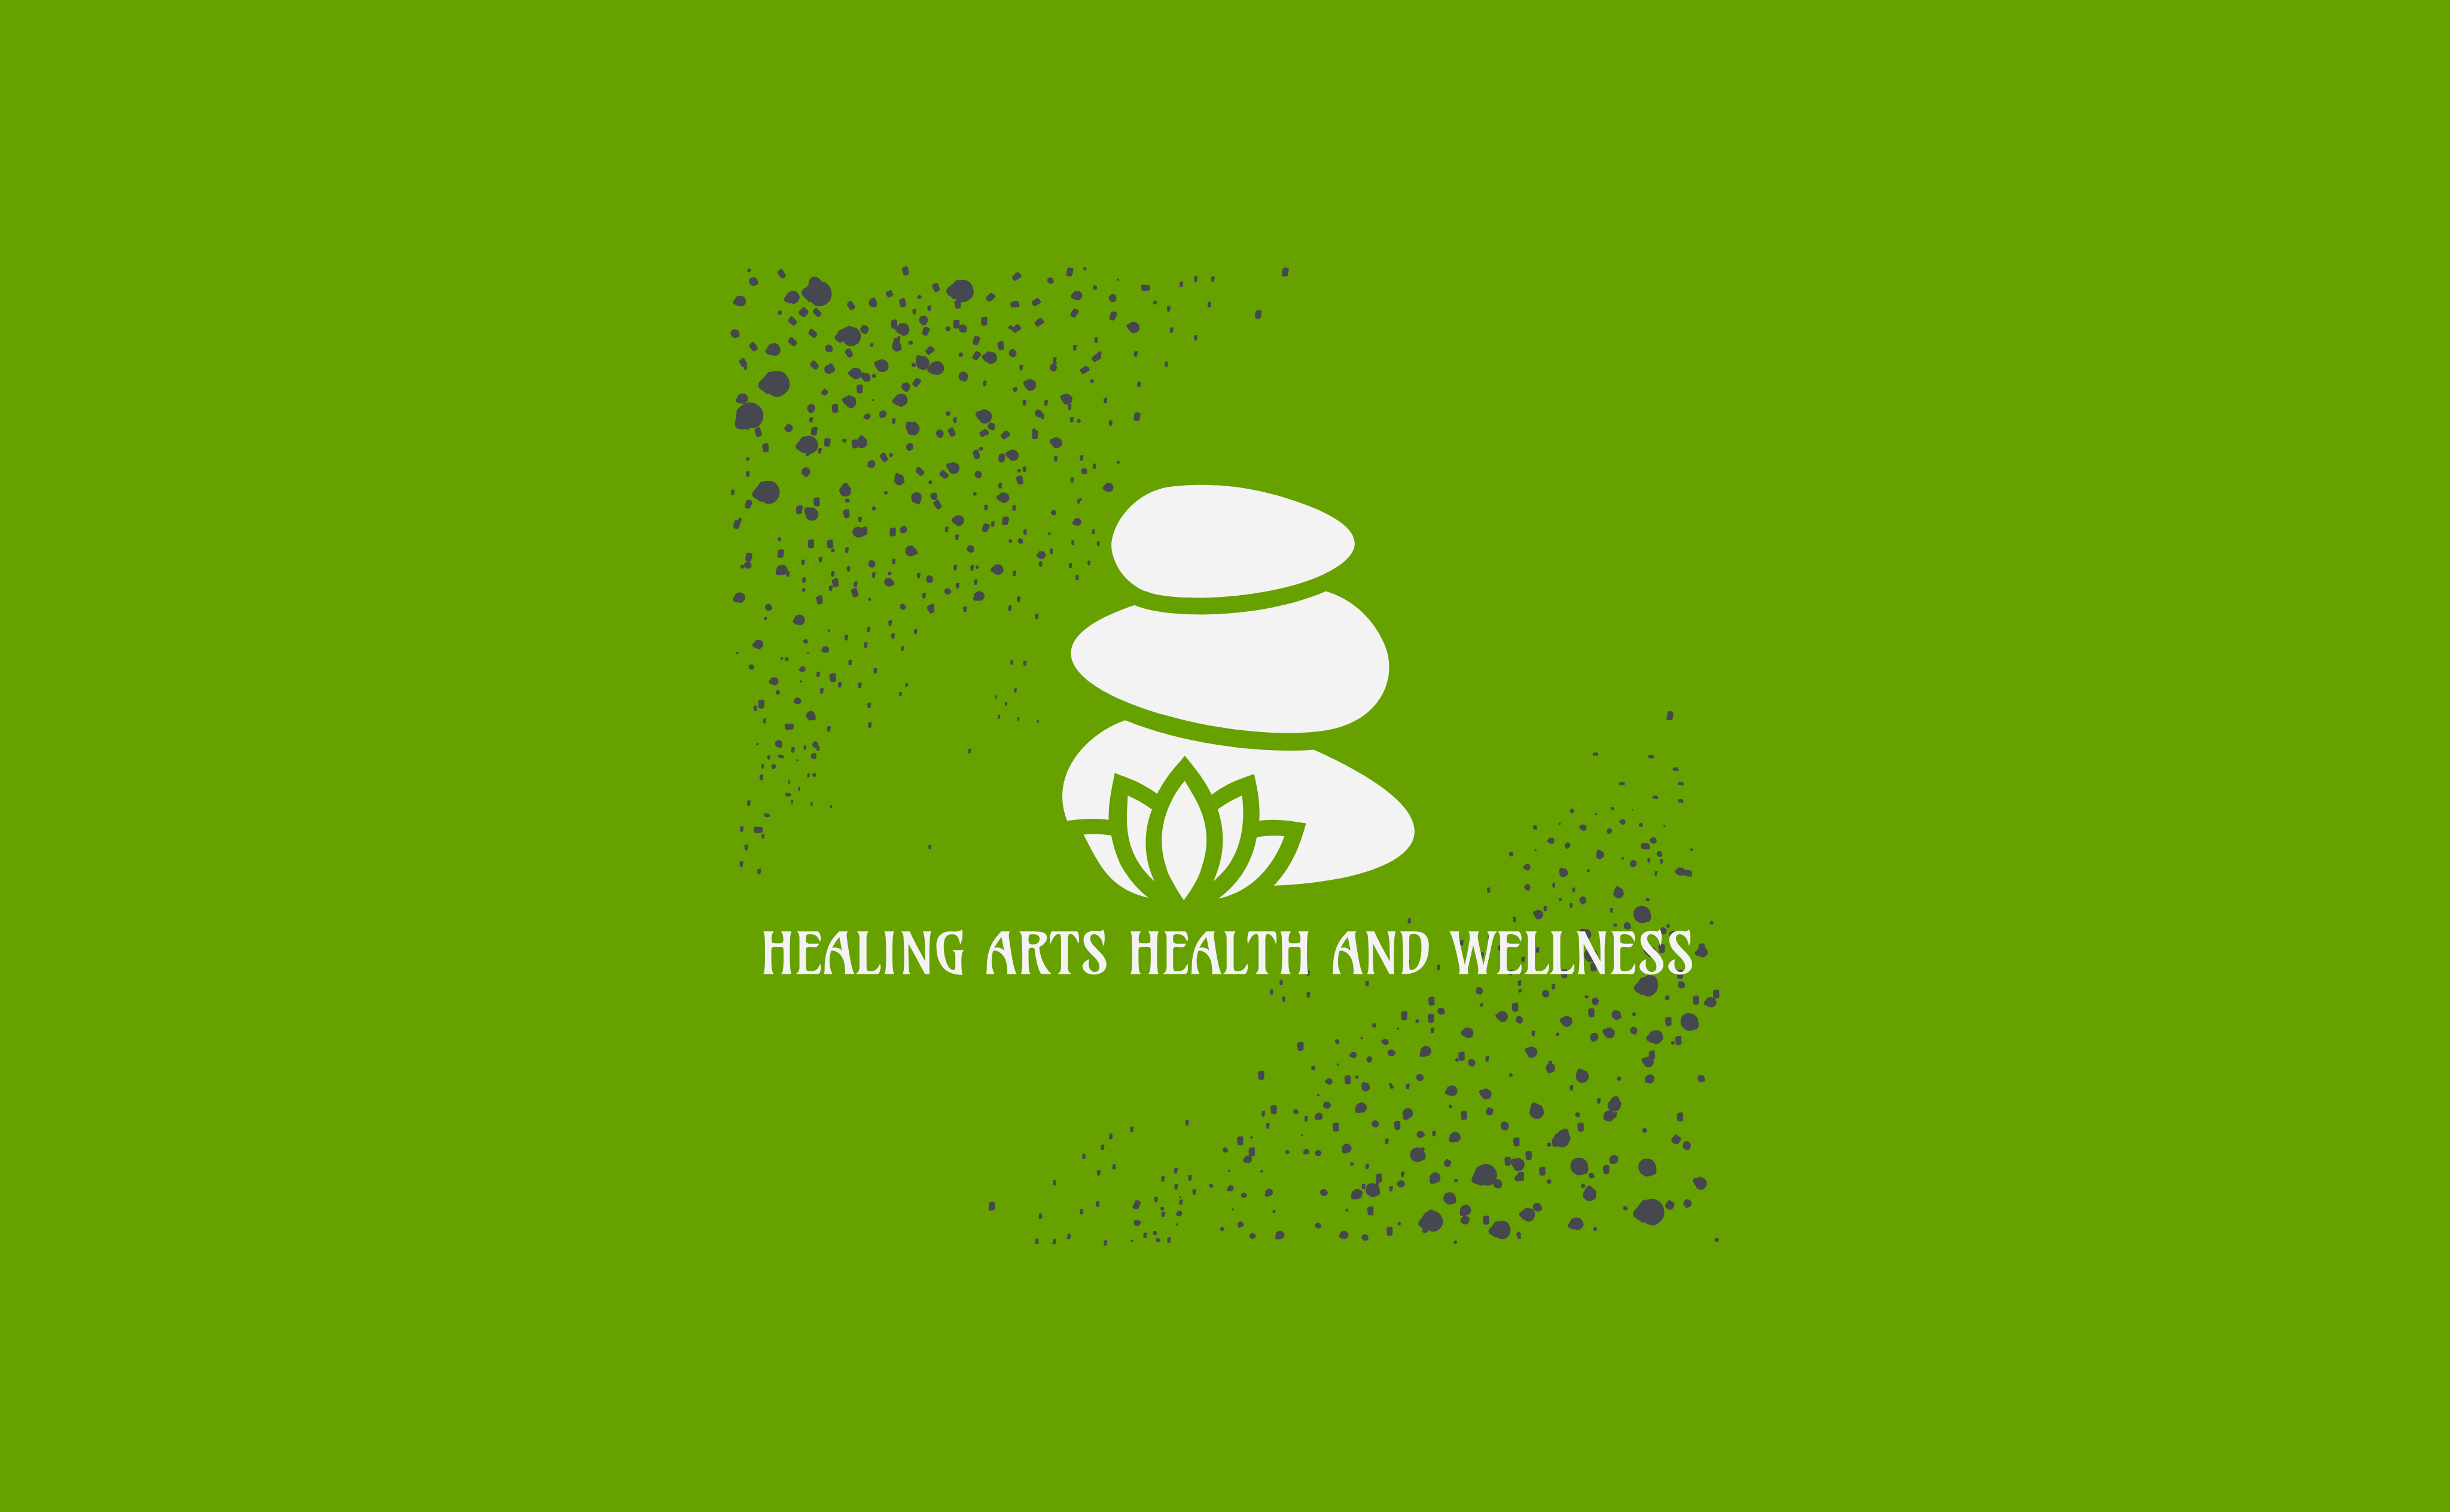 Healing Arts Health and Wellness